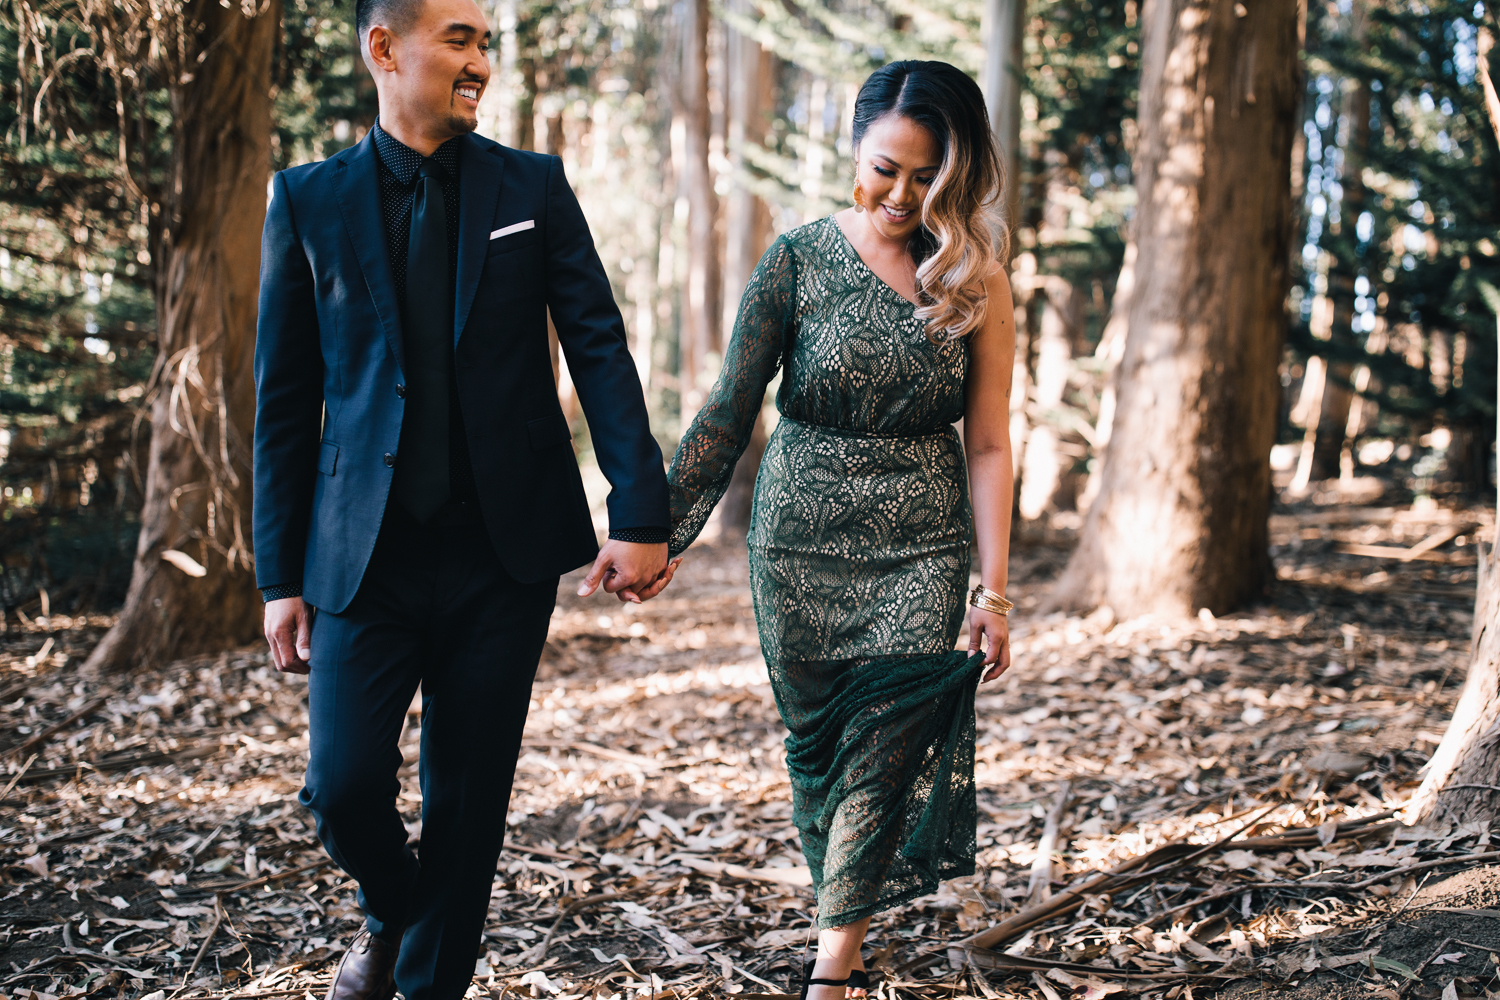 2018_11_ 042018.11.4 Leah + Ed Engagement Session Blog photos Edited For Web 0011.jpg